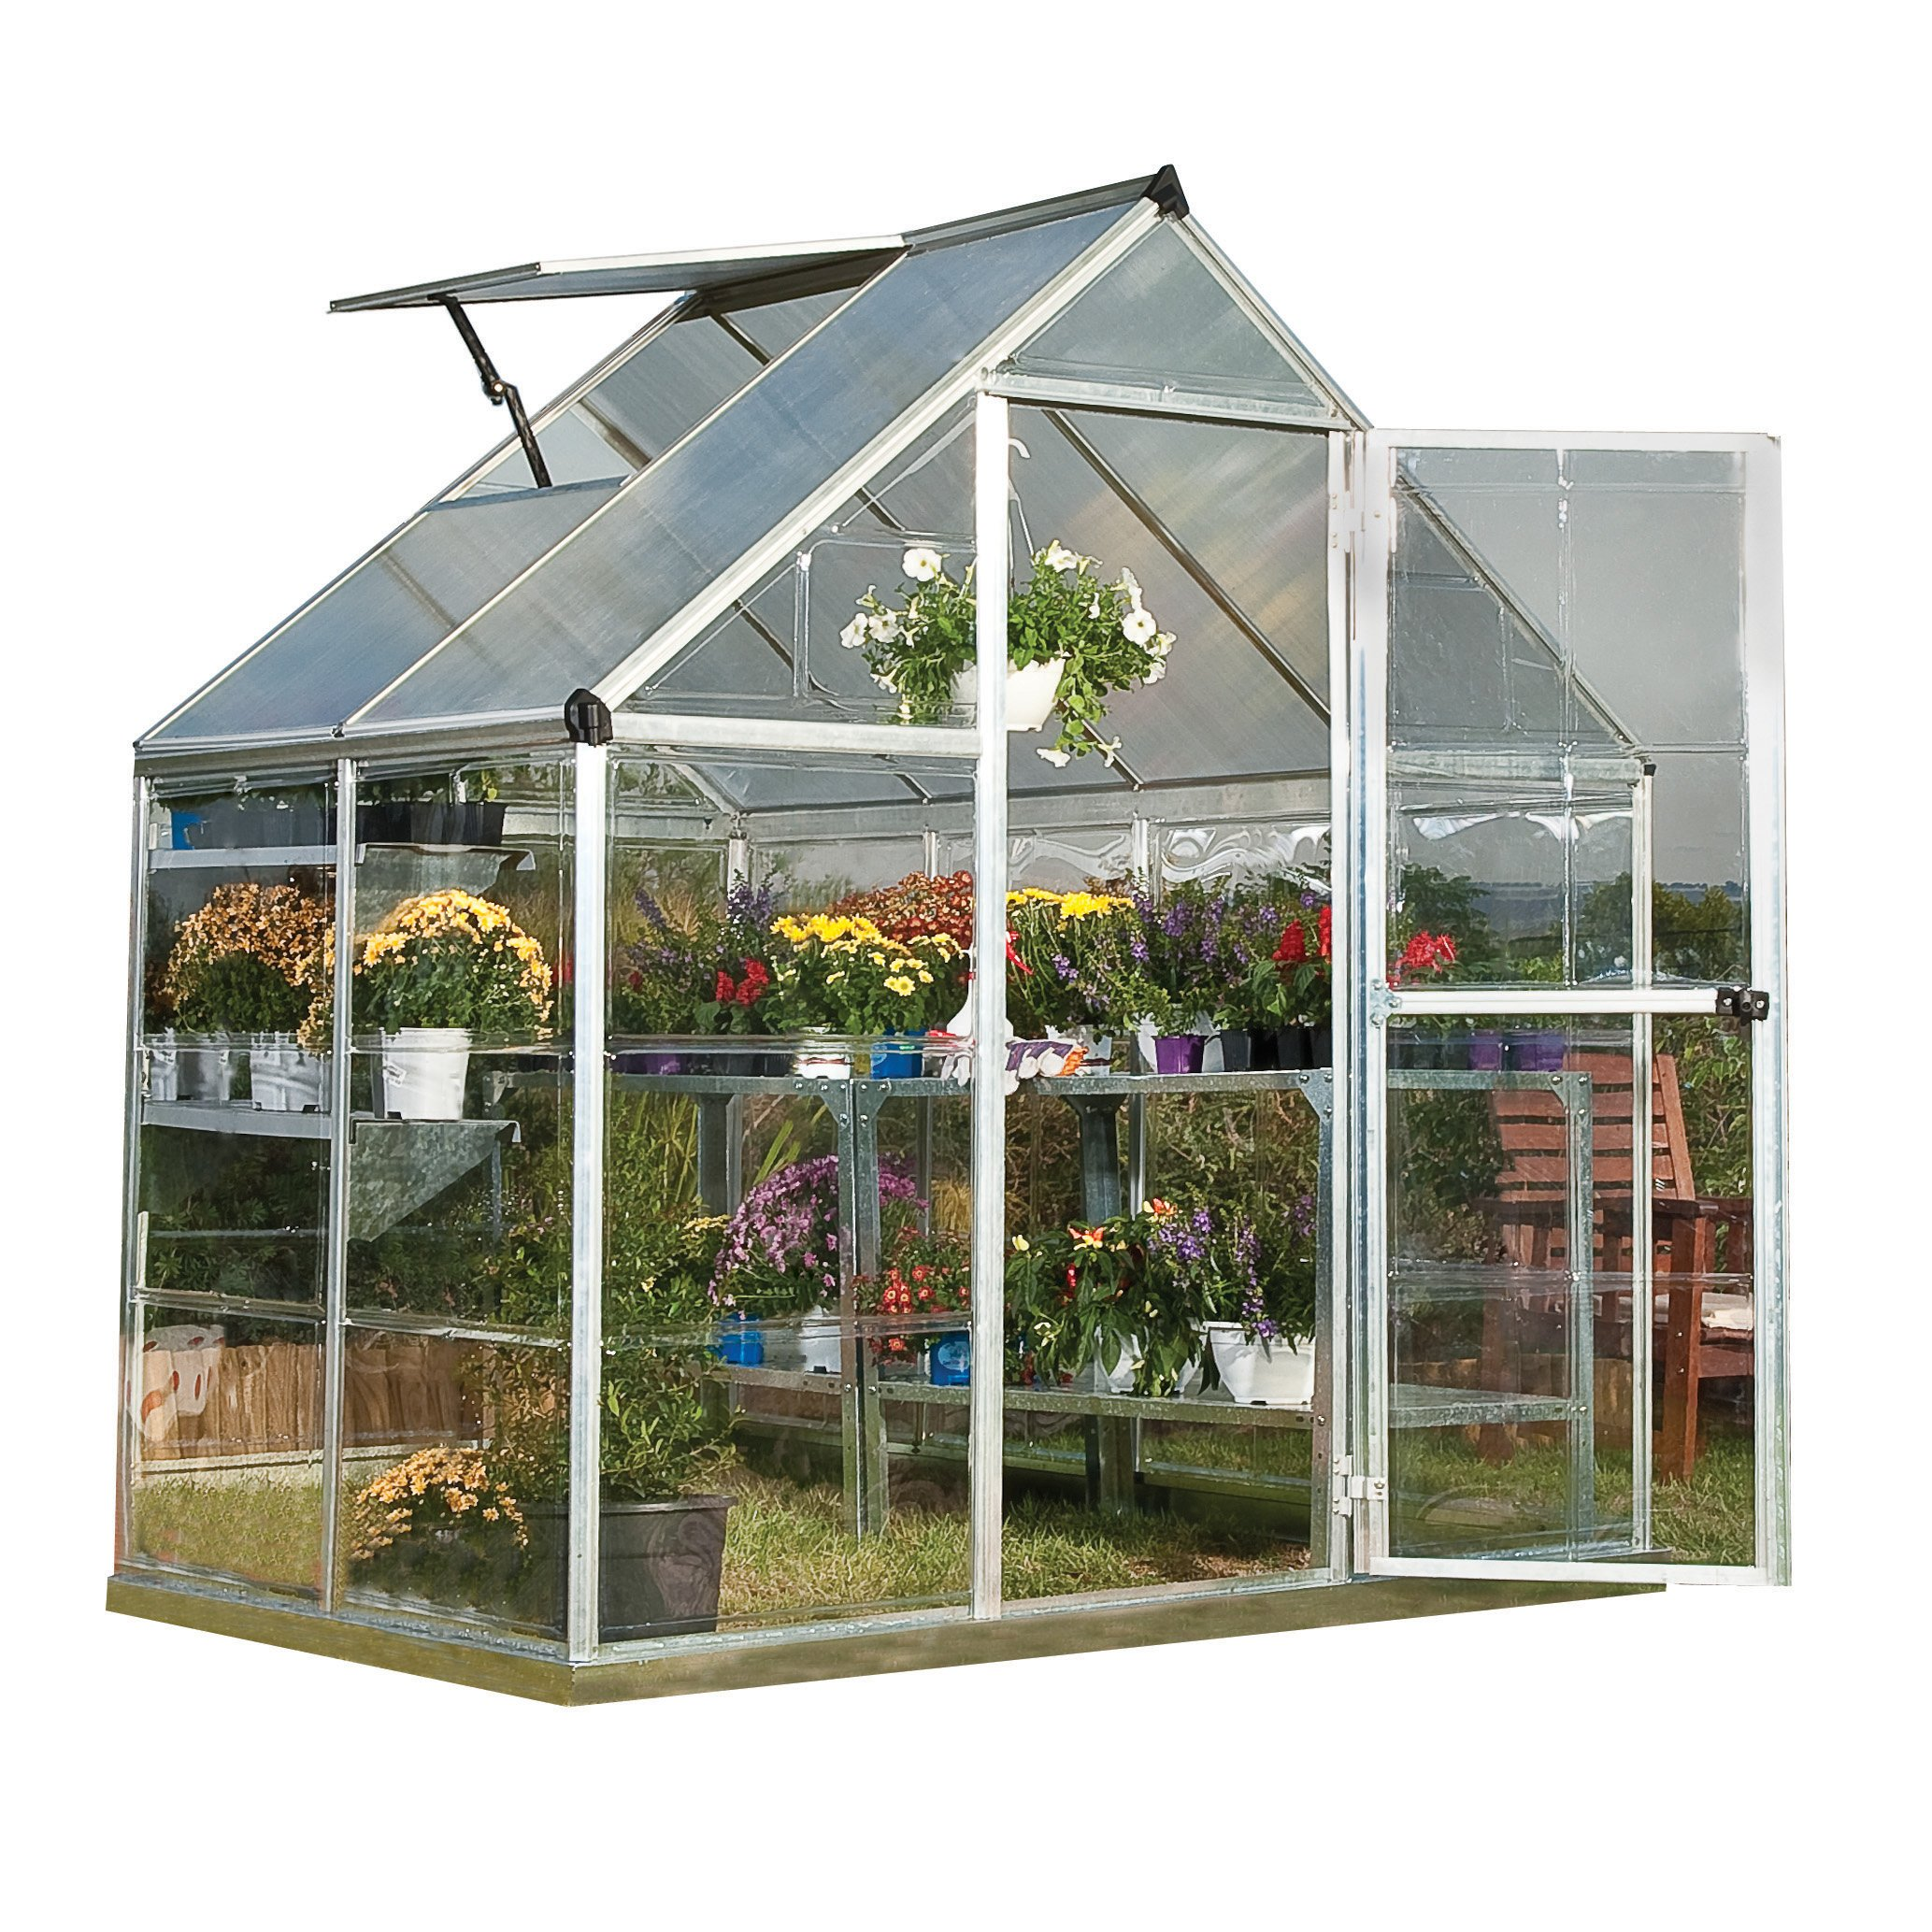 Palram Nature Series Hybrid Hobby Greenhouse - 6' x 4' x 7', Silver by Palram